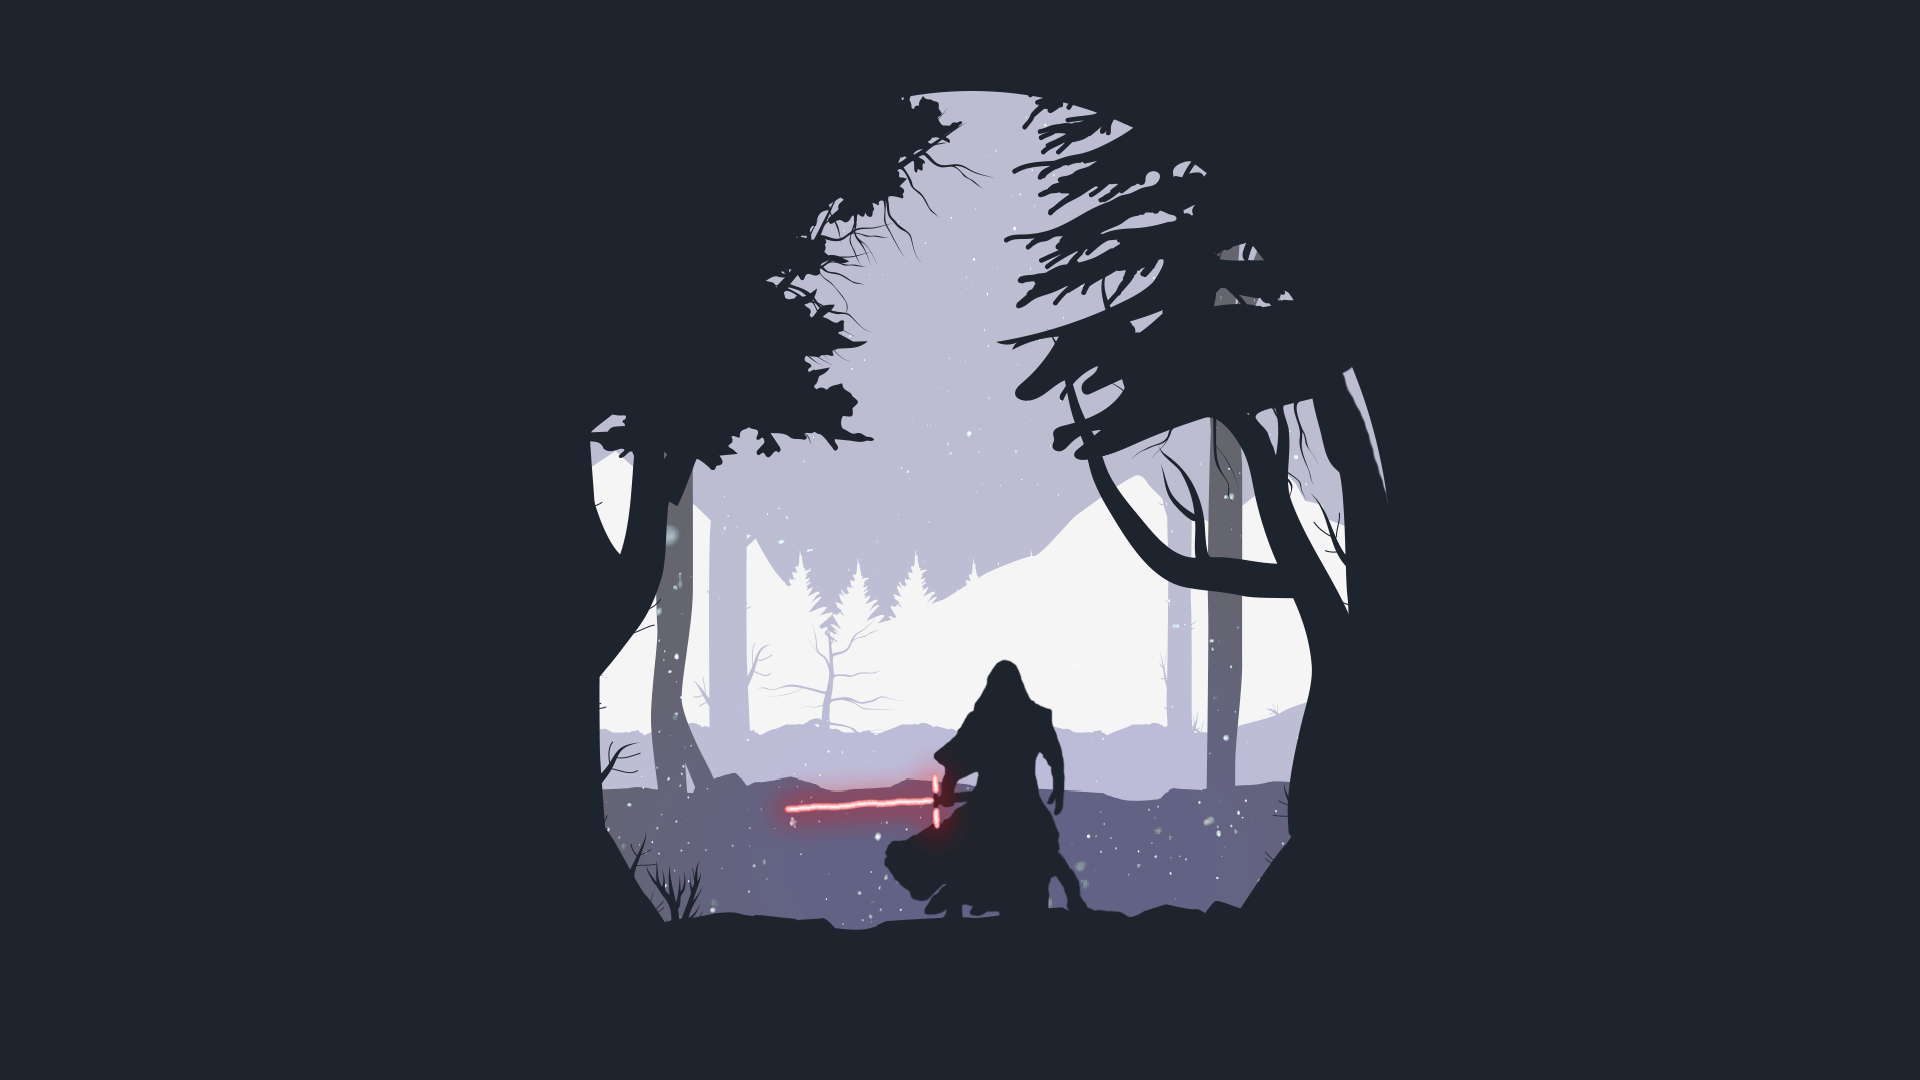 Star Wars Minimalist Wallpapers Top Free Star Wars Minimalist Backgrounds Wallpaperaccess